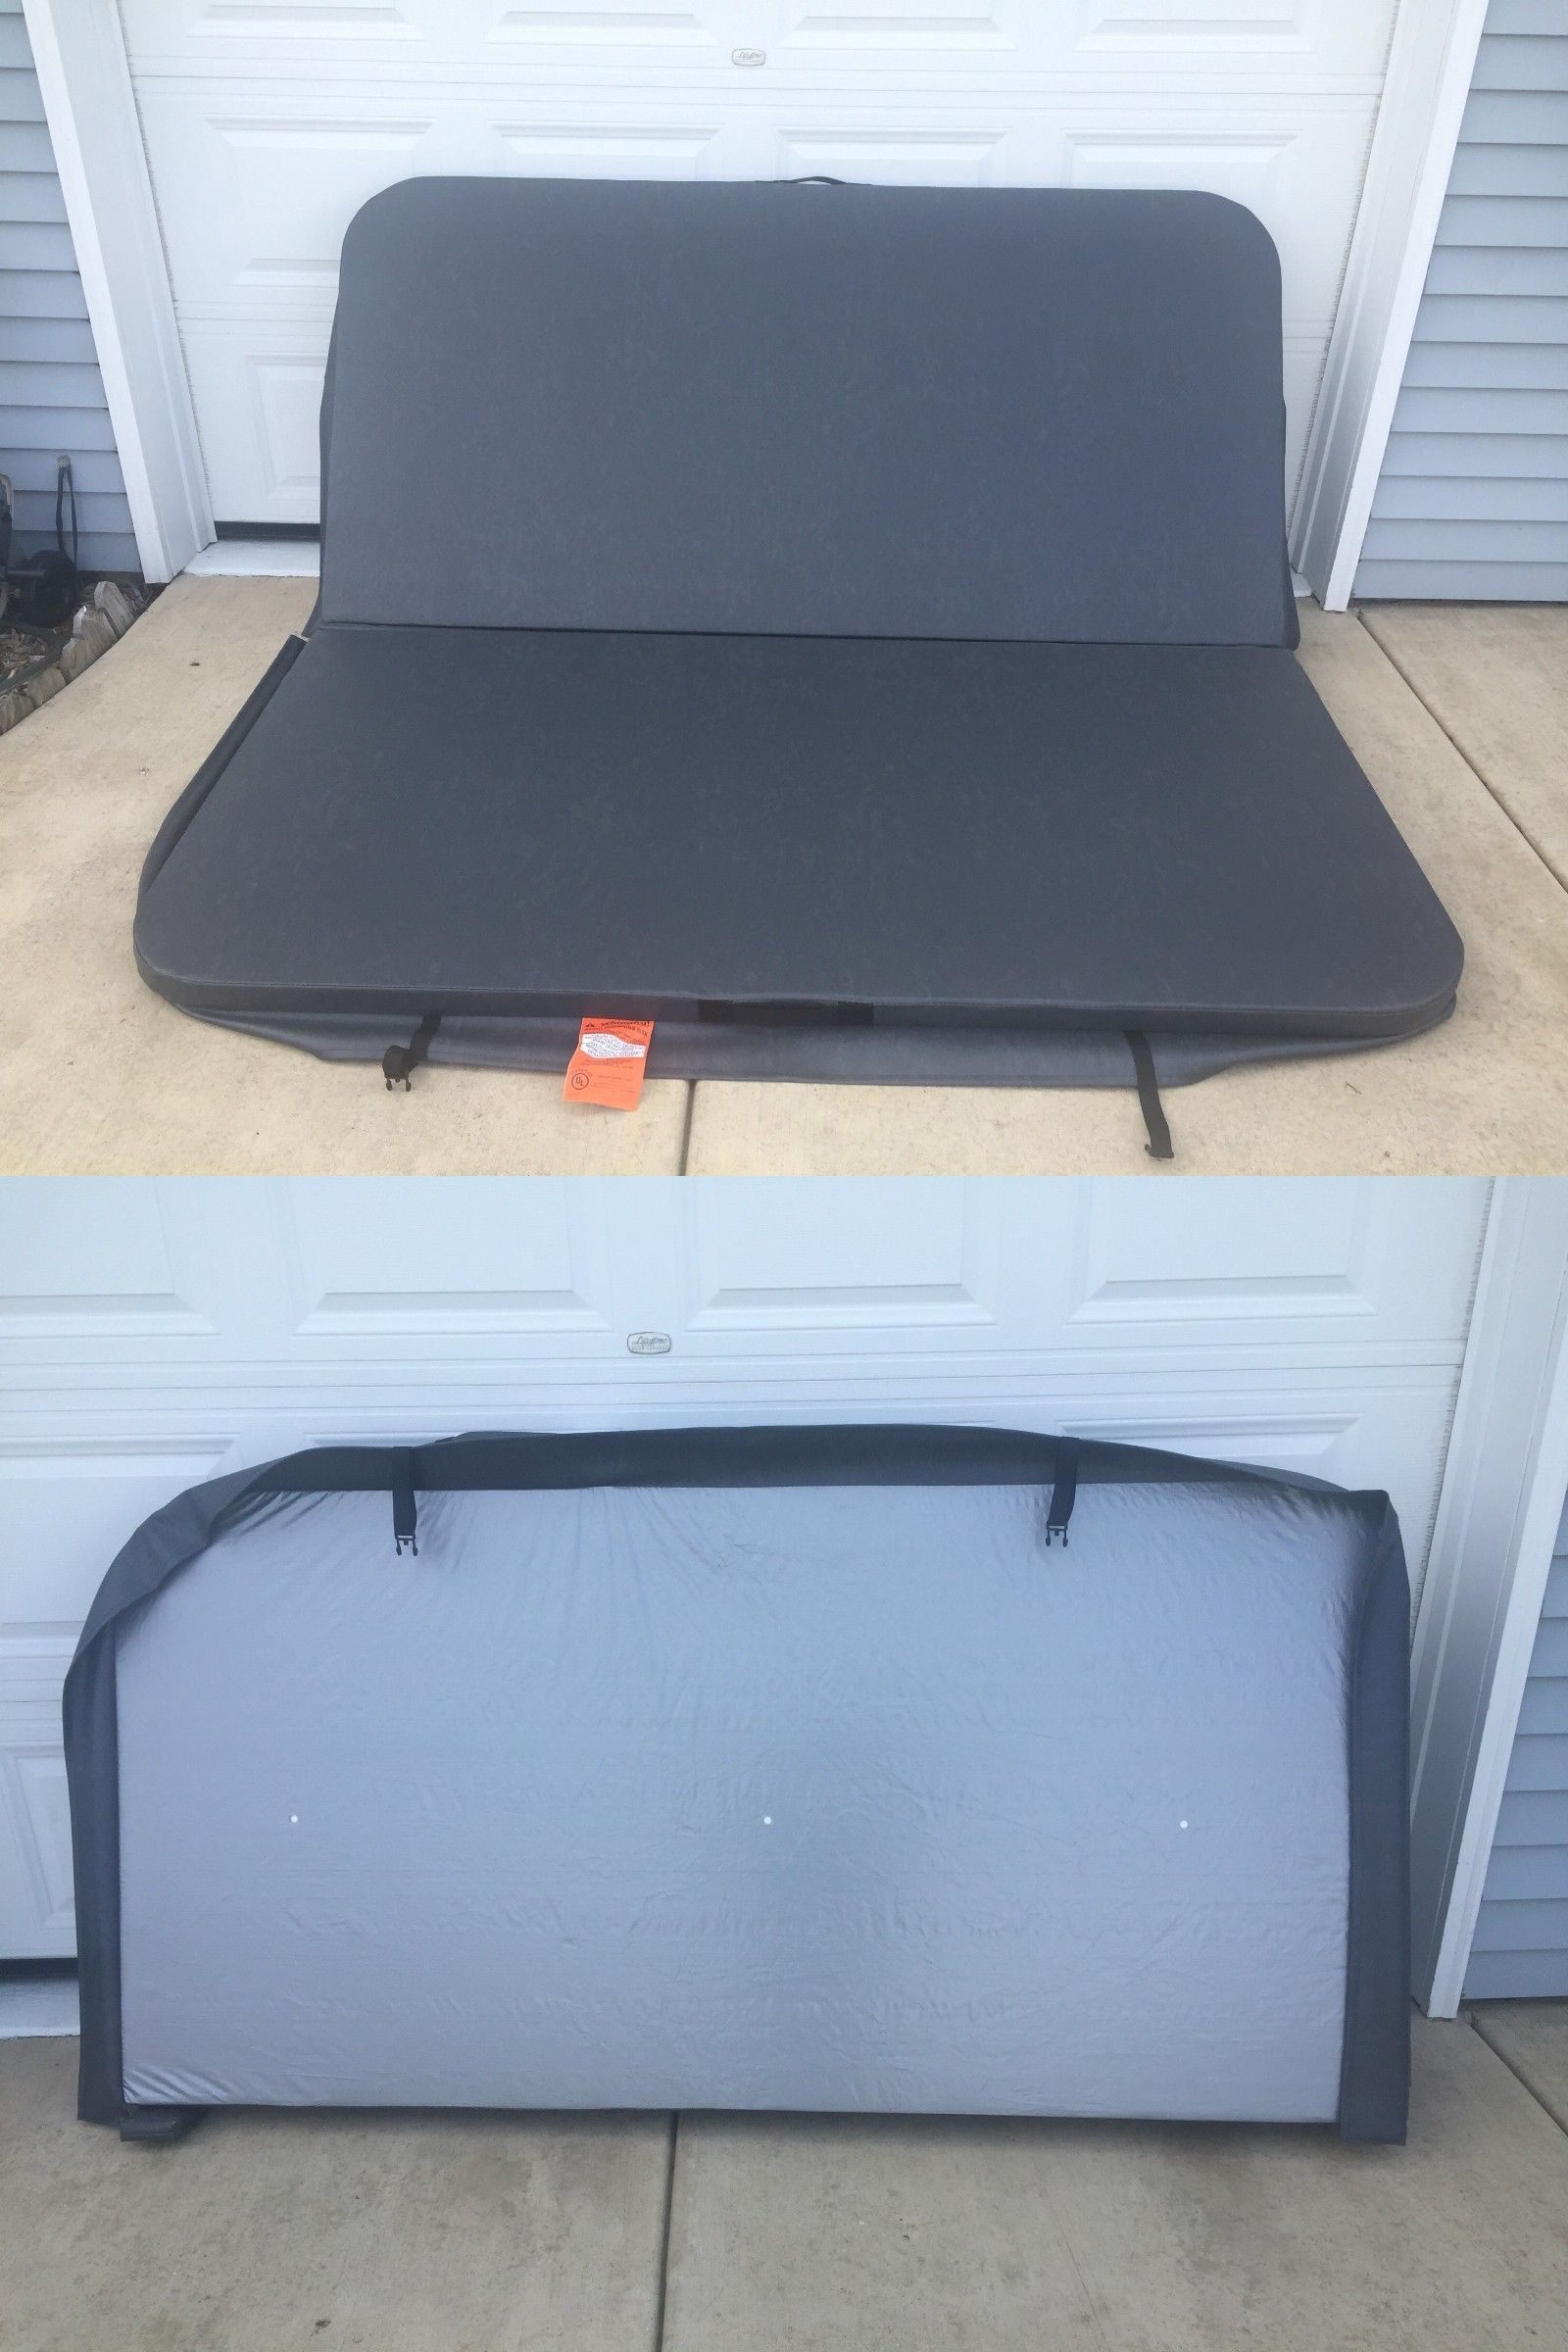 Spa and Hot Tub Covers 181074: Price Reduced-Brand New Custom Hot ...